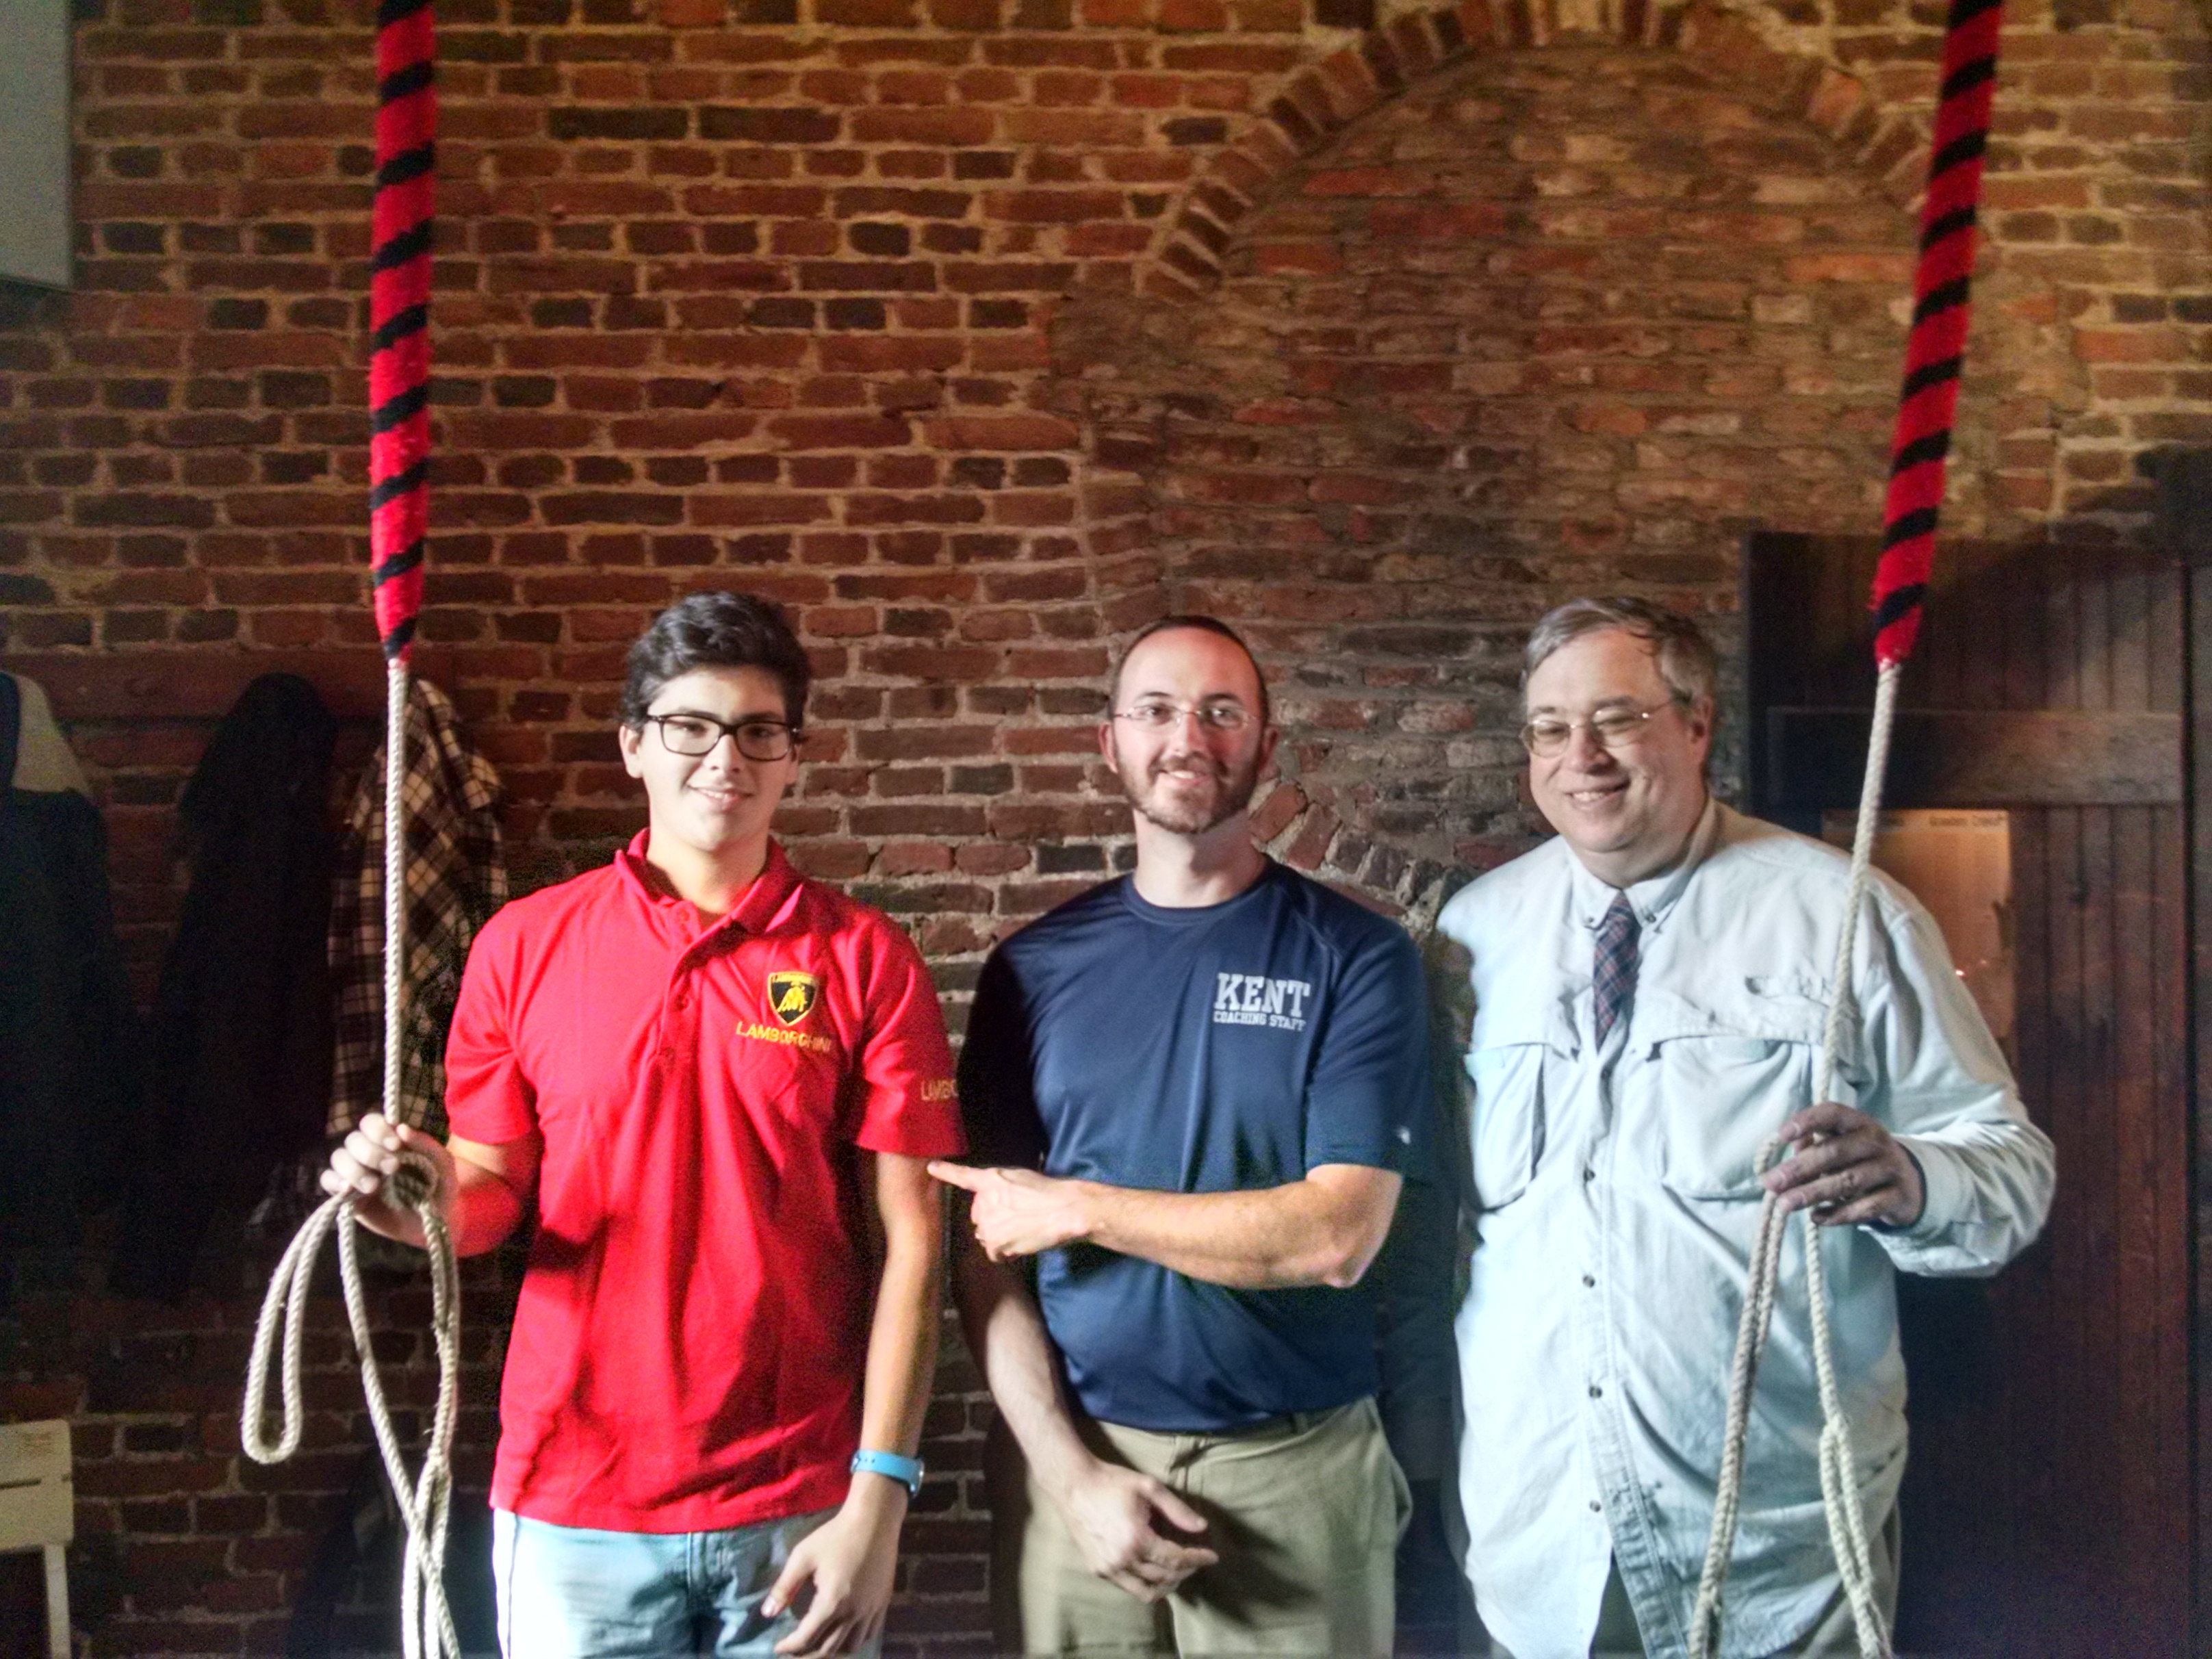 A young man, a middle age man playfully touching his arm, and an older man, standing and smiling in a ringing chamber with ropes.